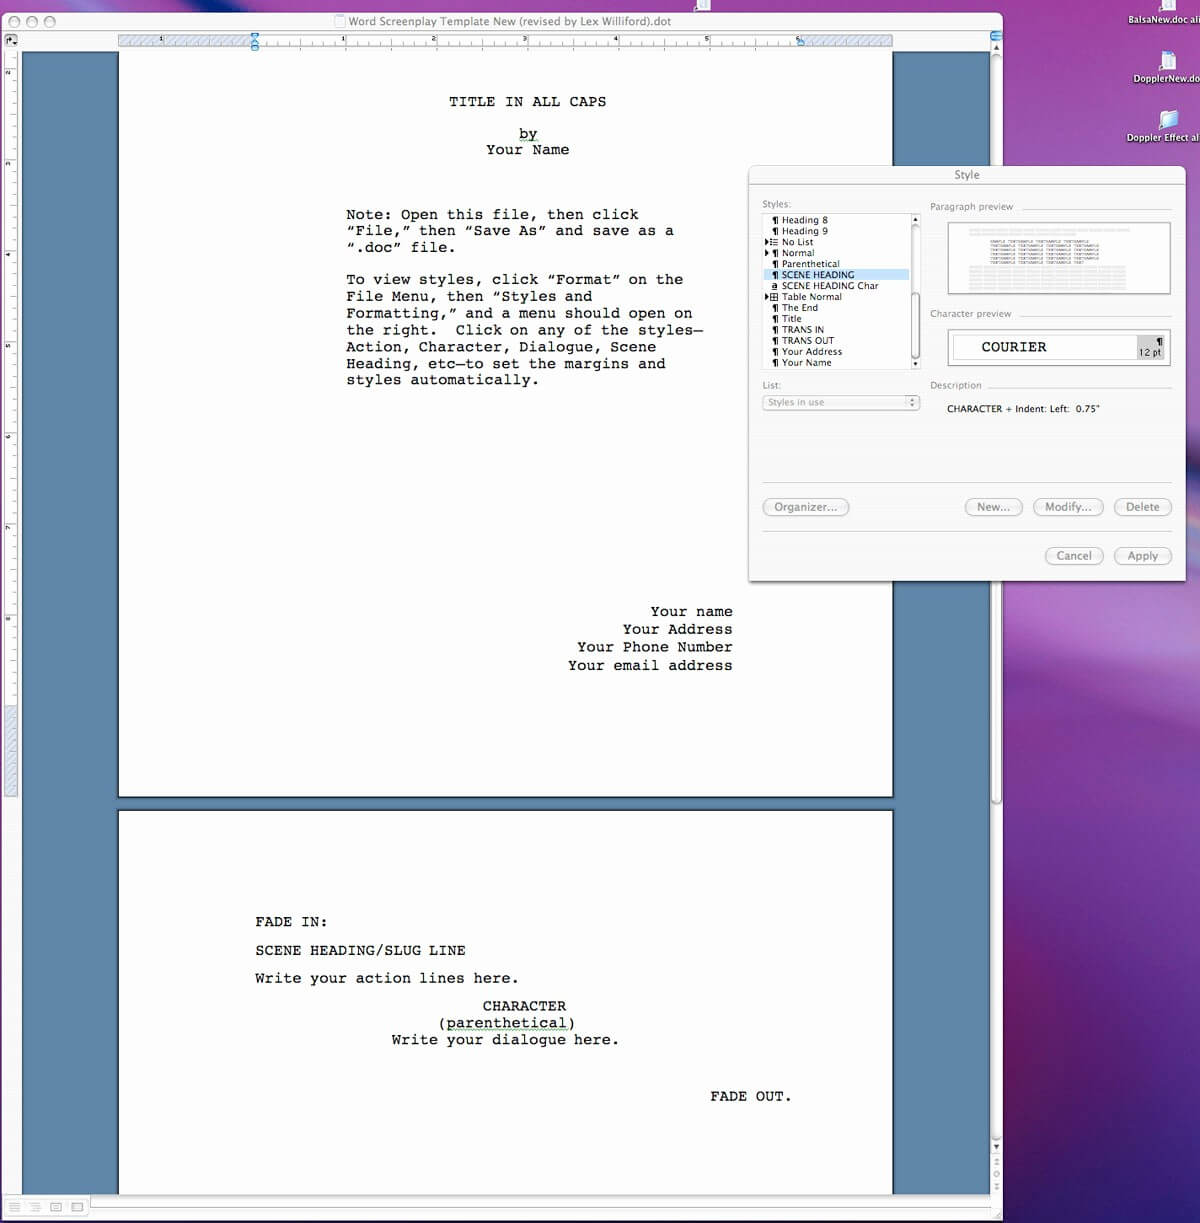 020 Microsoft Word Screenplay Template Ideas Format Within Microsoft Word Screenplay Template